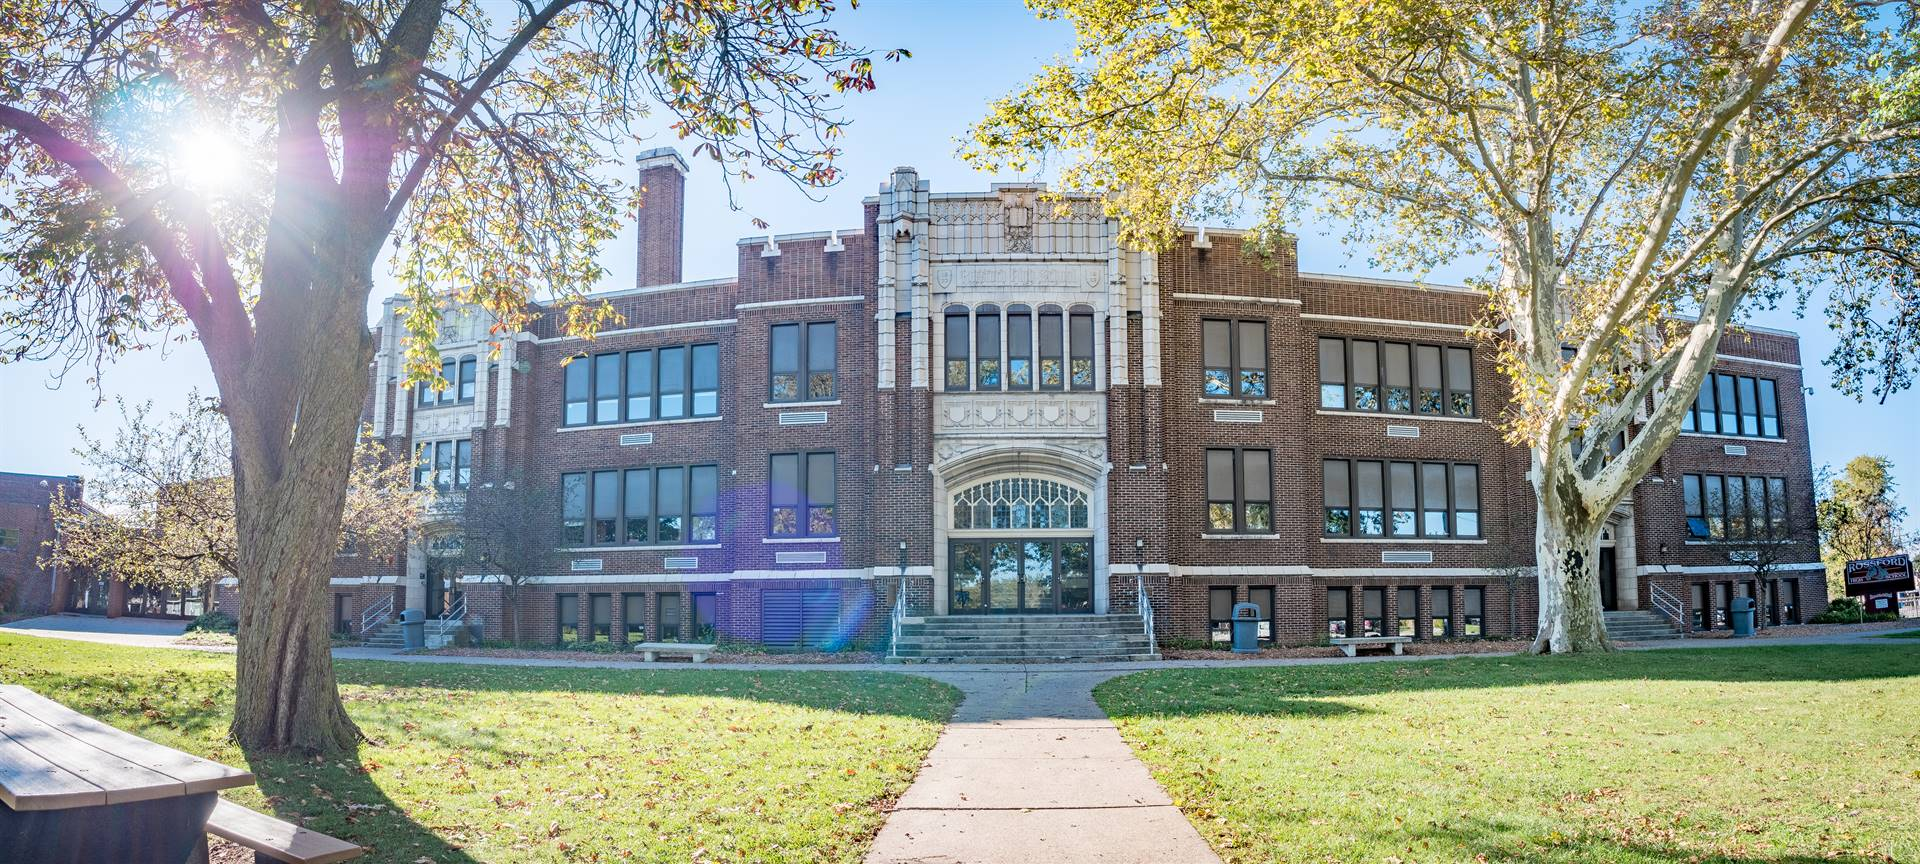 Front of Rossford High School